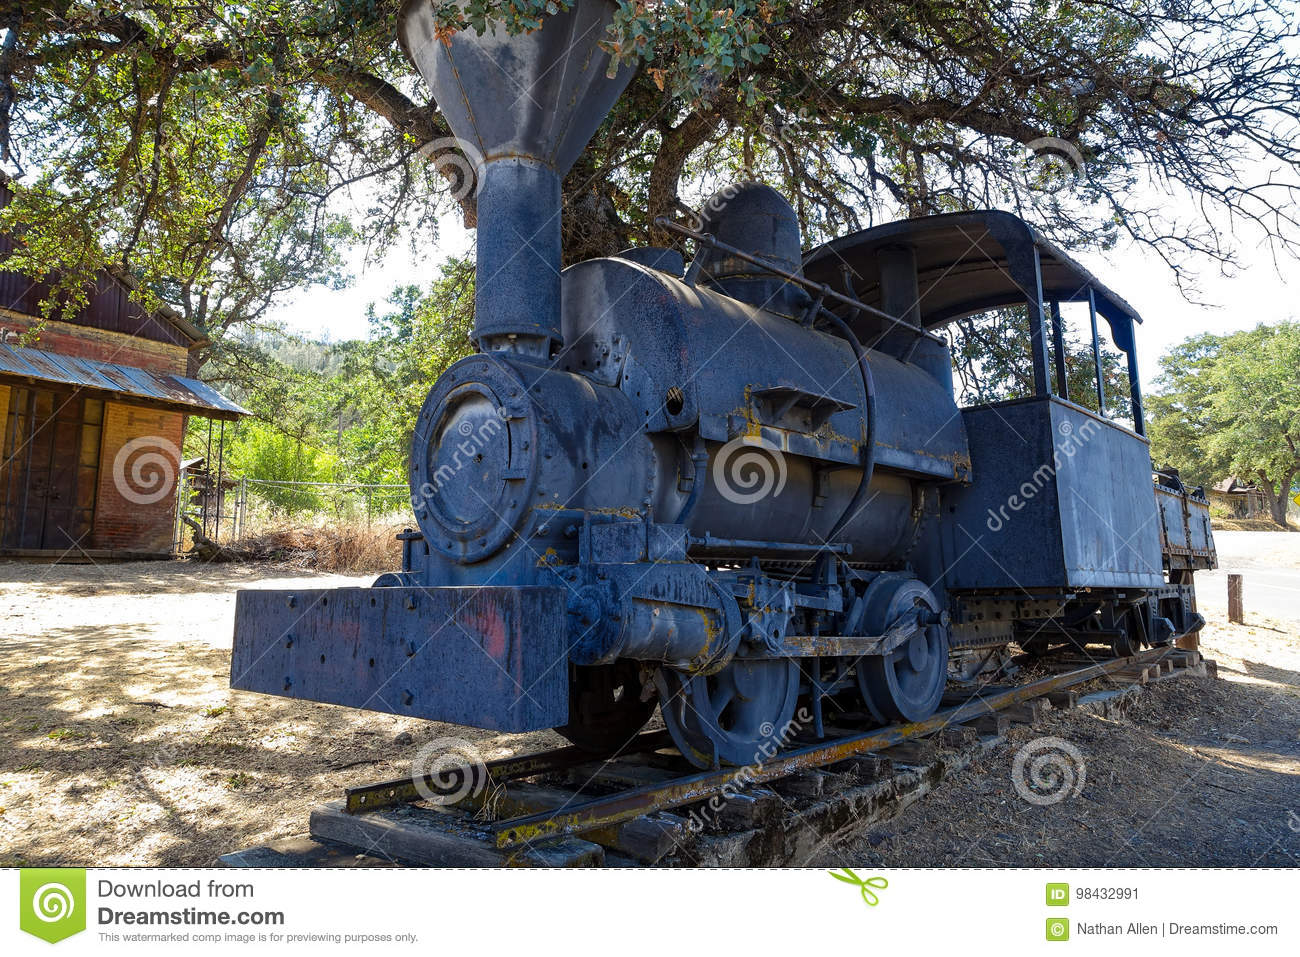 Old Train on Display in Coulterville, California